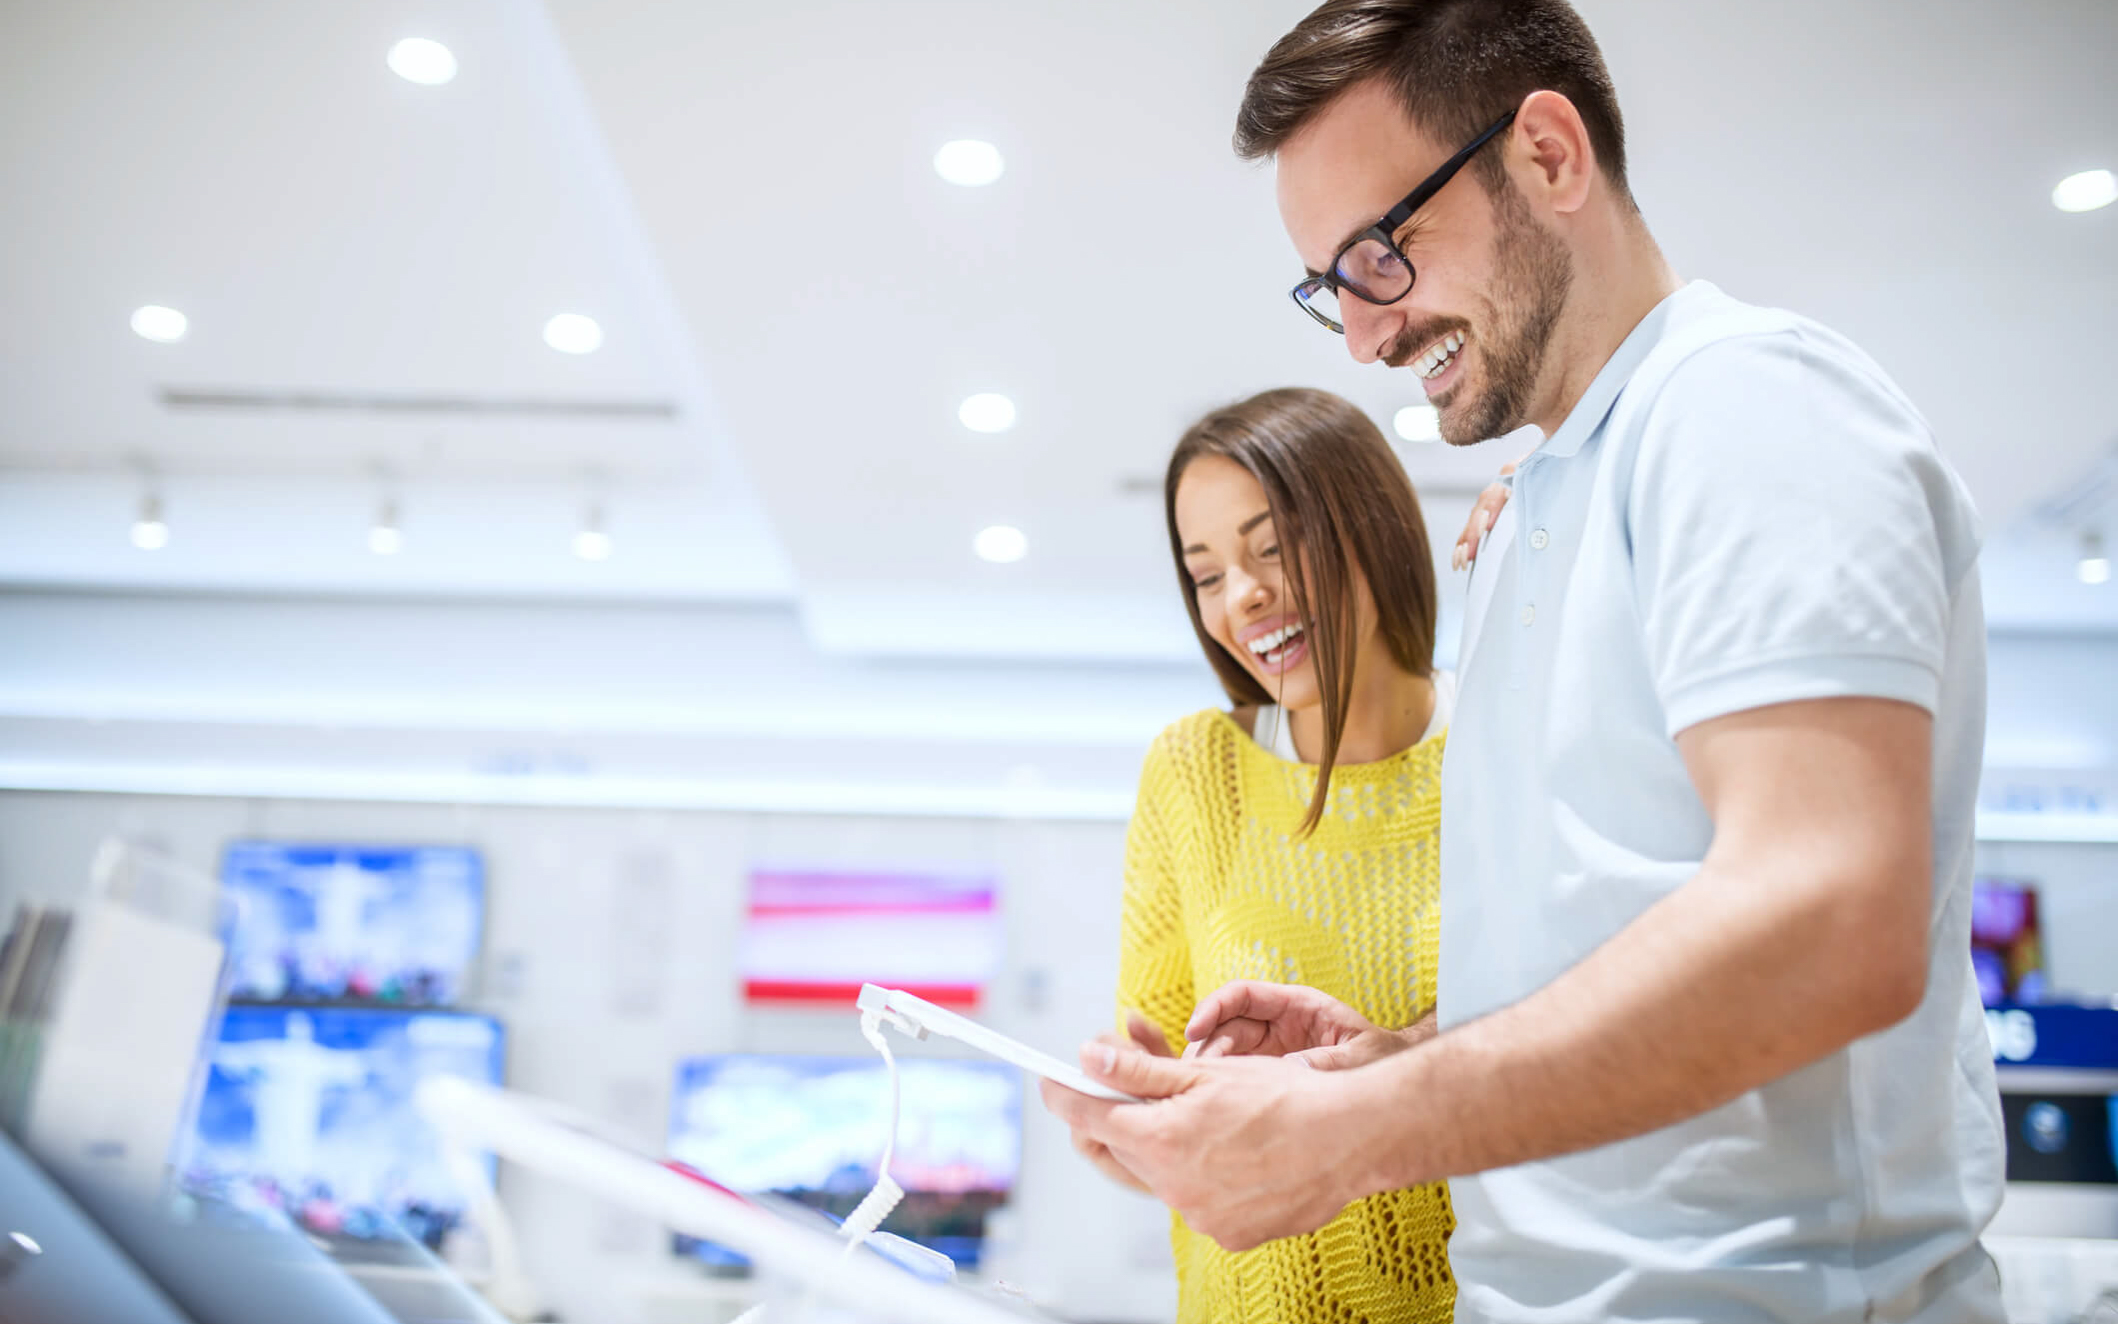 Phygital Retail - Another Buzzword or the Next Big Thing Accumula Blog